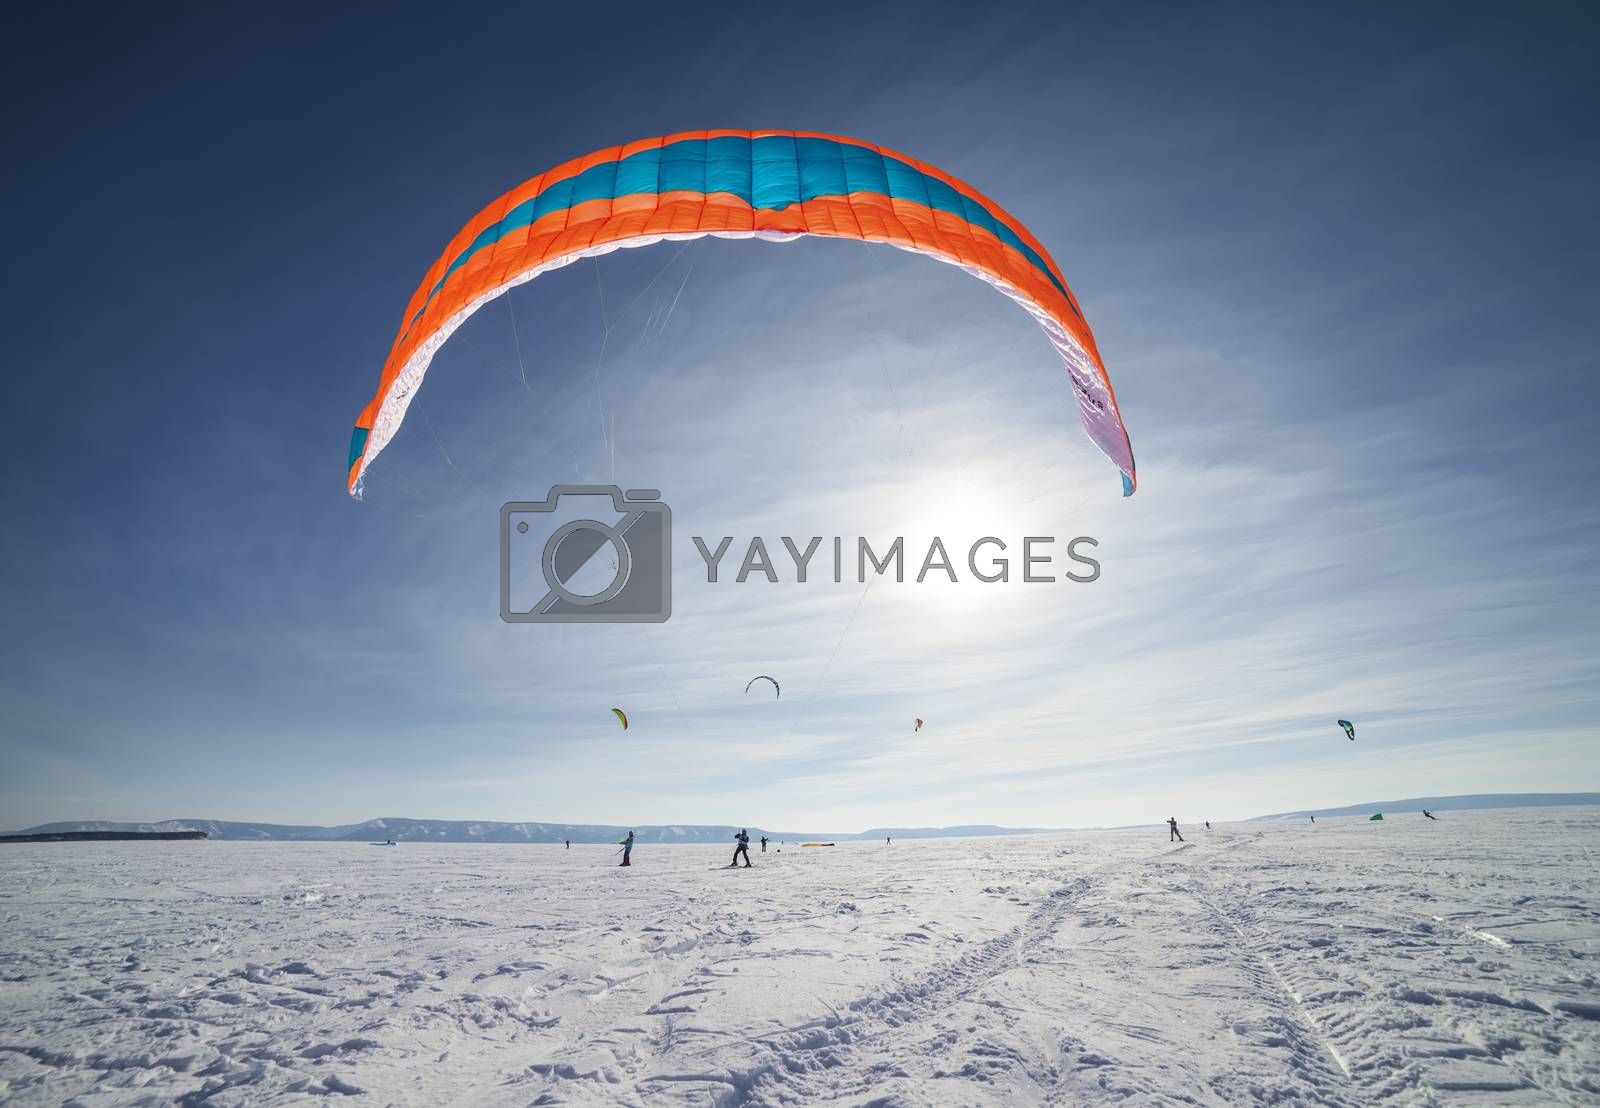 Kite surfer being pulled by his kite across the snow